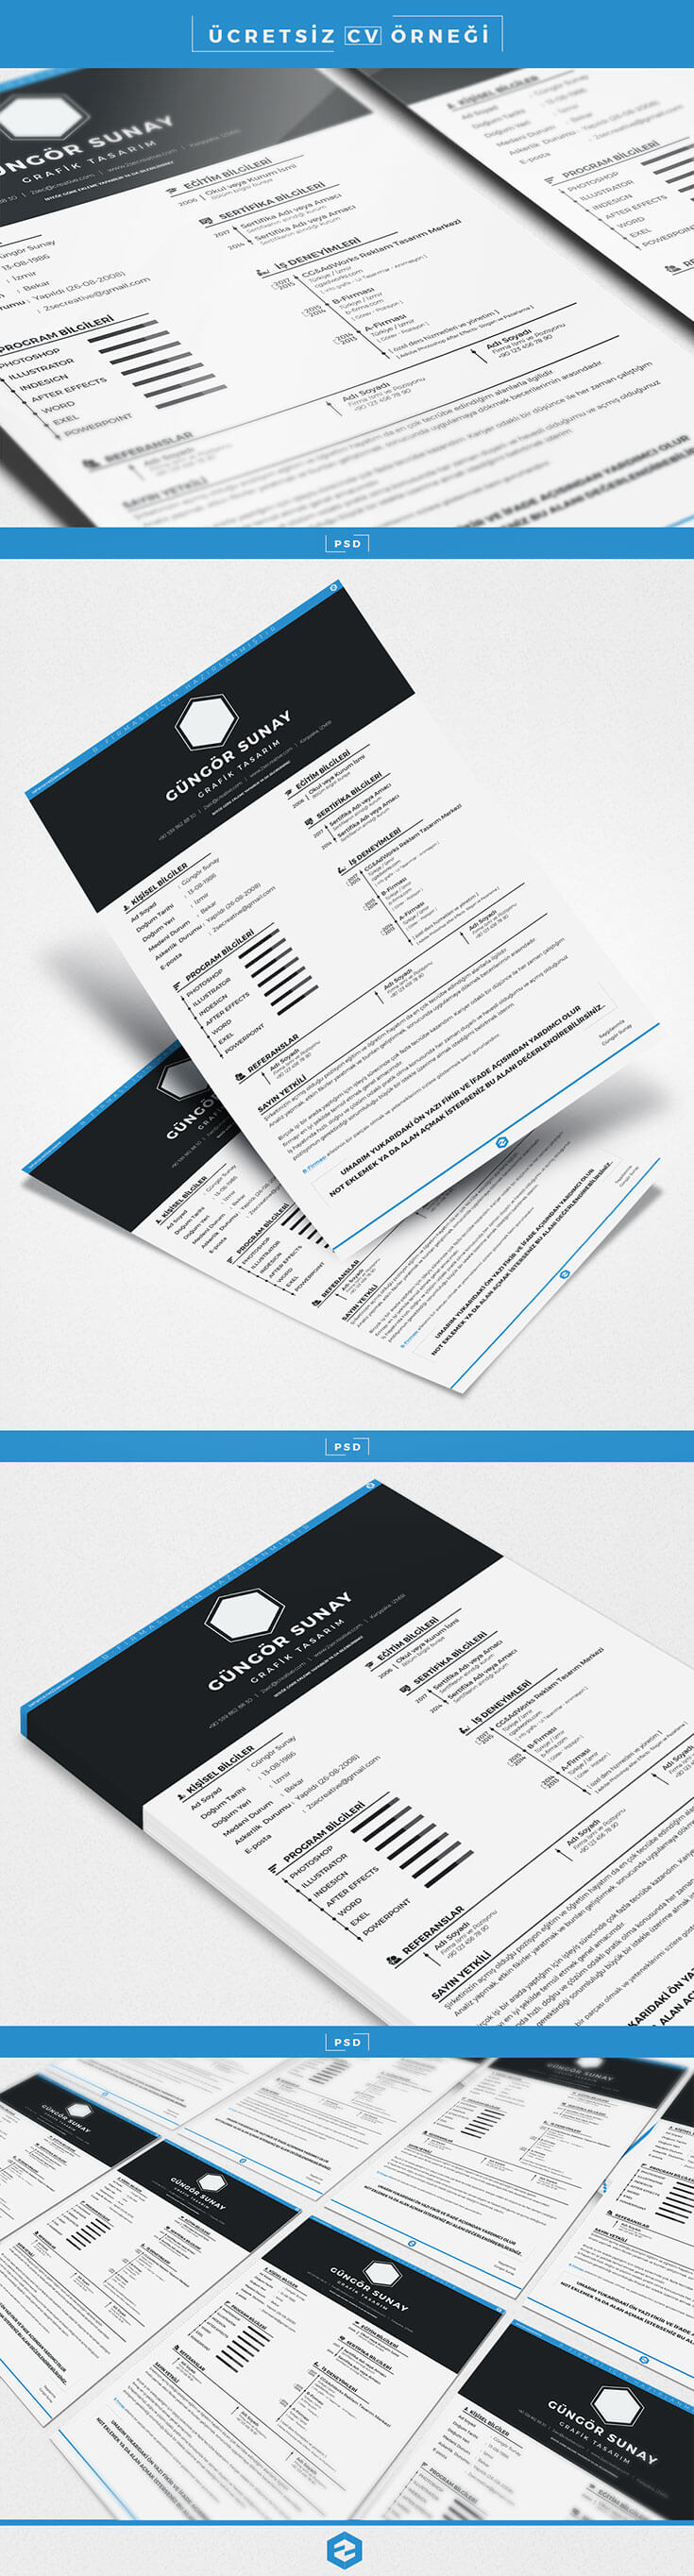 Free CV #Sample #PSD #Template template and take your job life to the next level. It's a fully editable so you can replace the text, change the name.